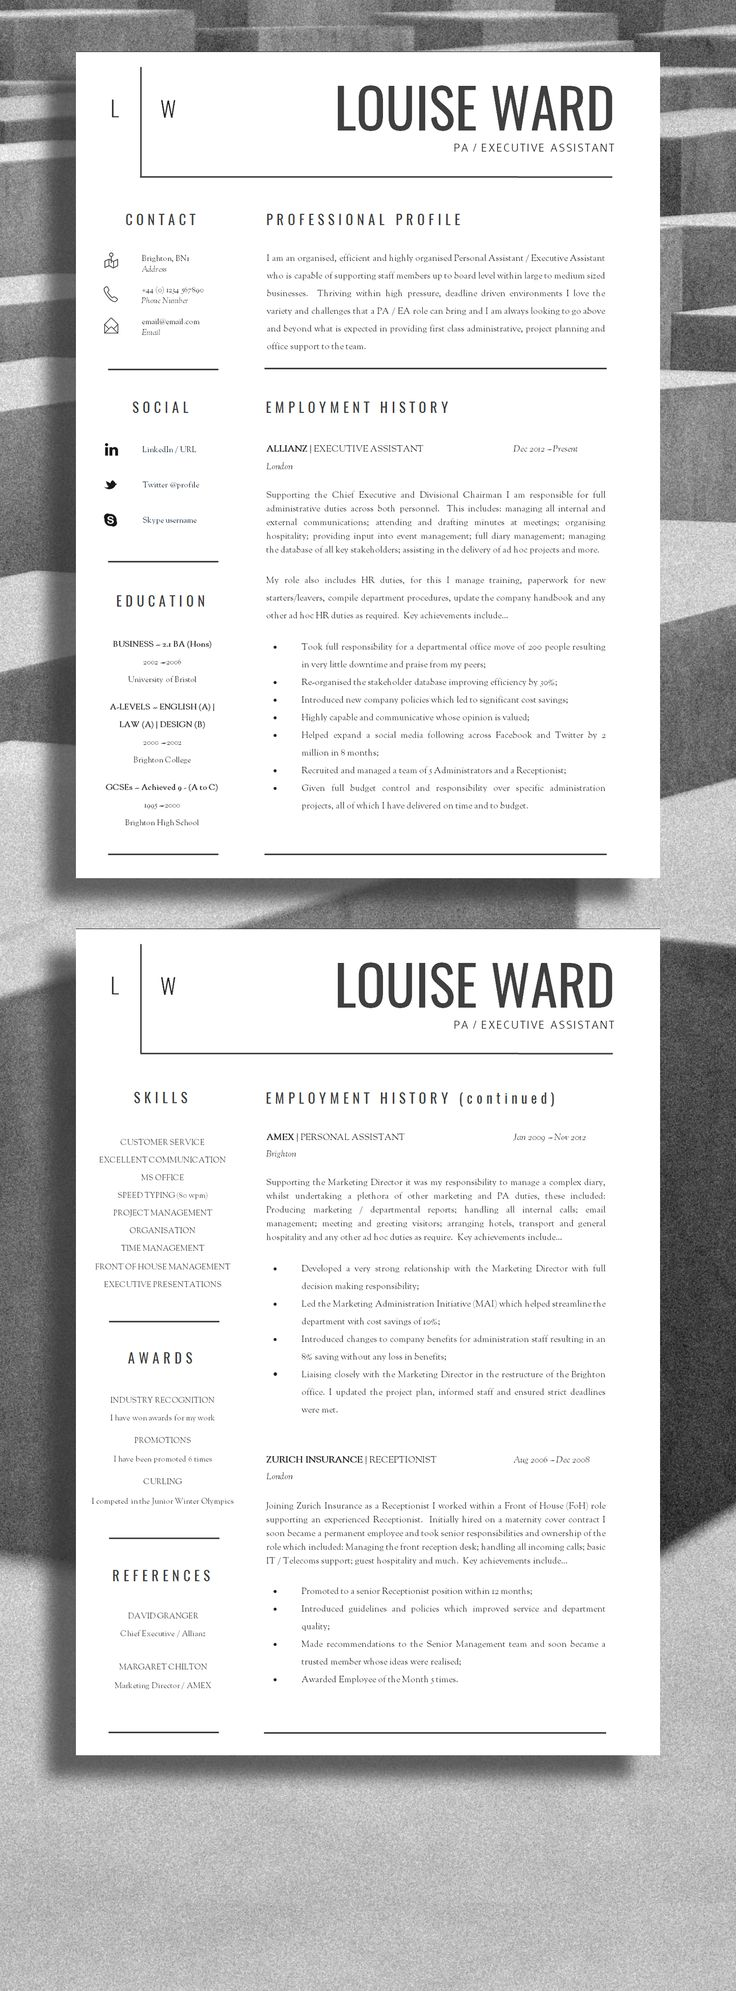 best images about resume design layouts resume